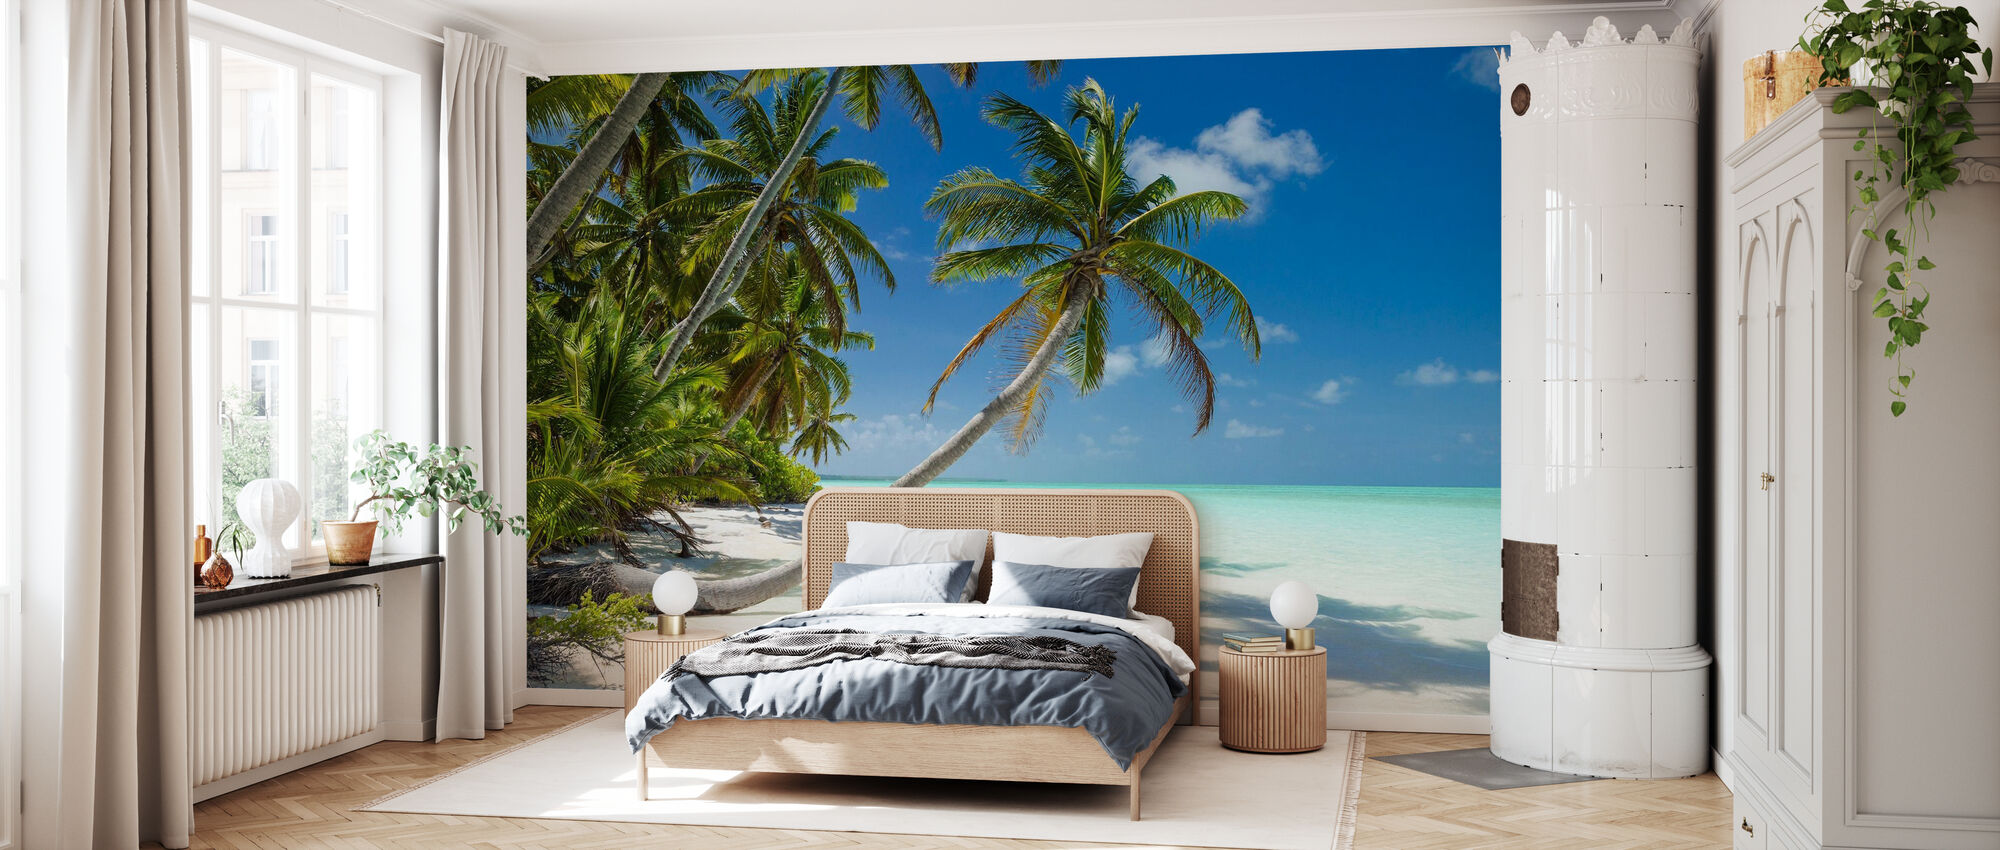 Lagoon and Palm Trees - Wallpaper - Bedroom